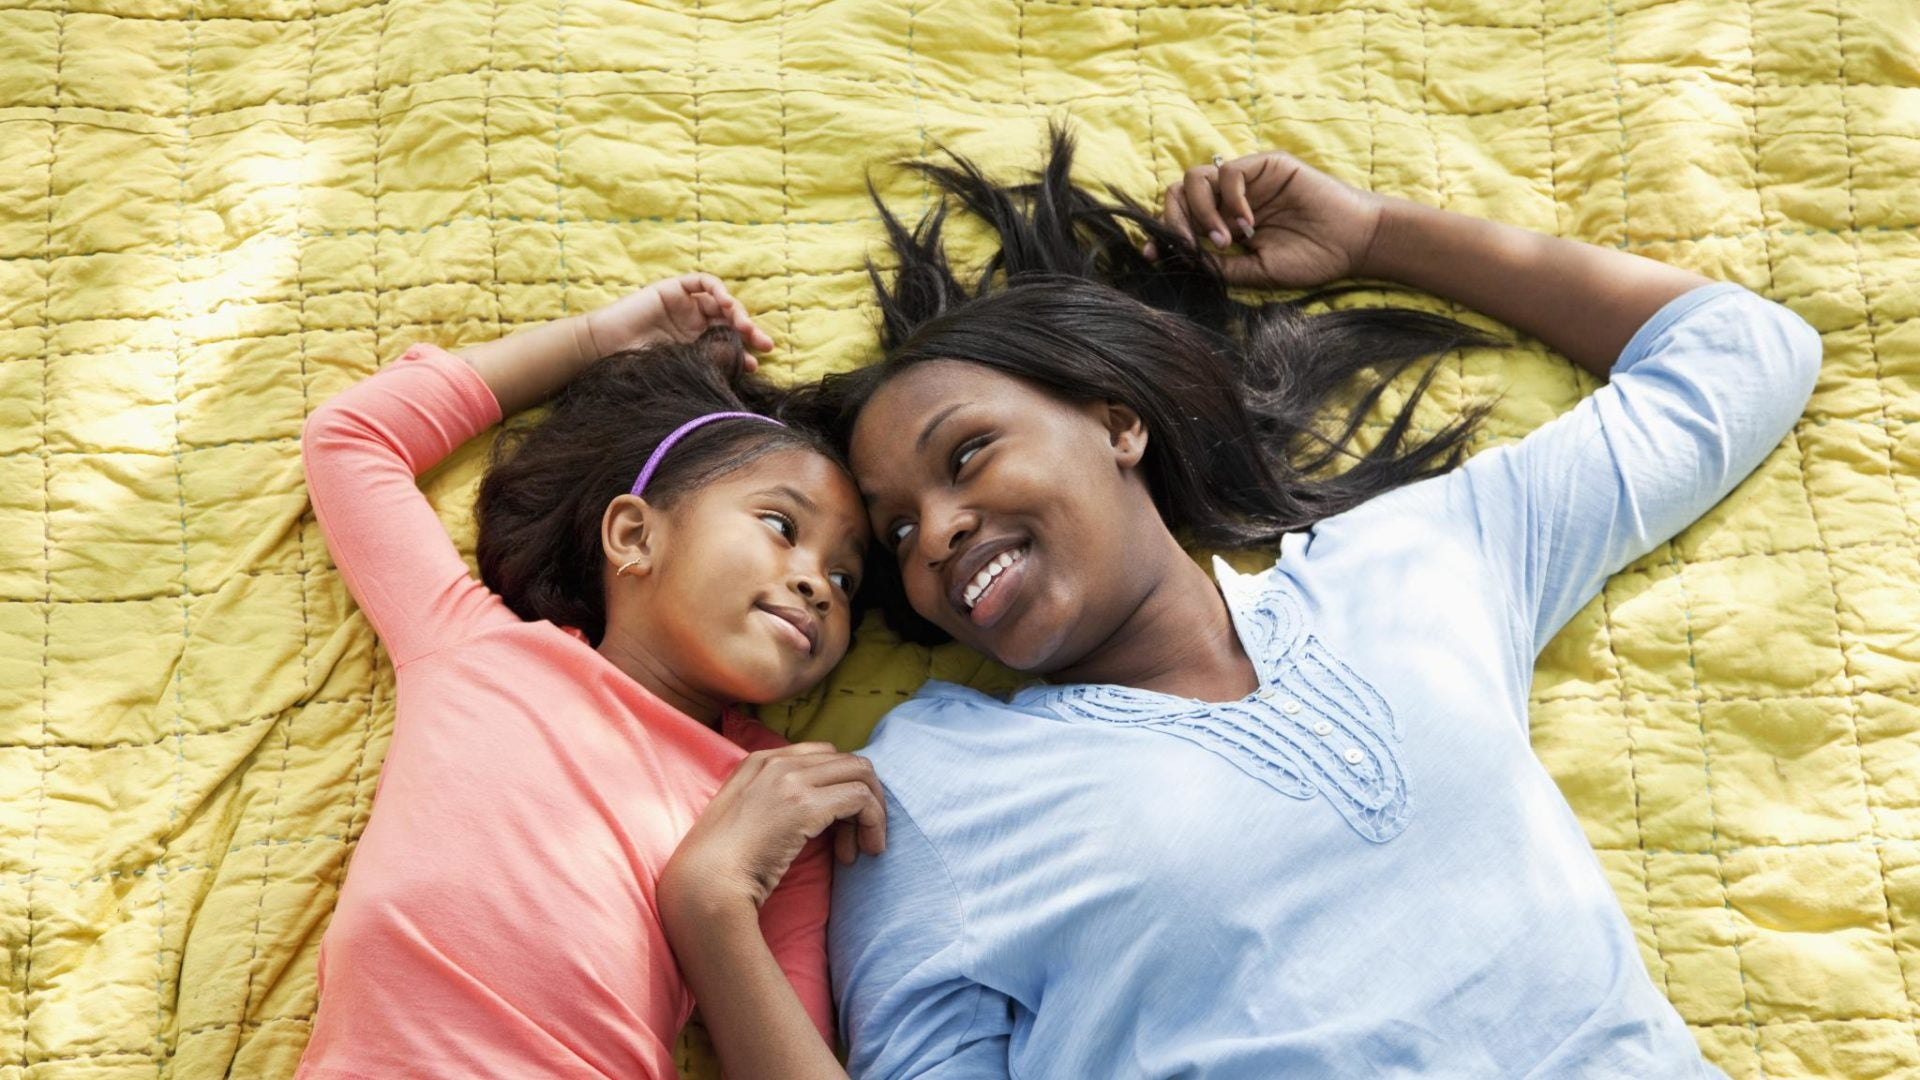 No Shame: Yes, I Have a Therapist (and My Daughter Does, Too)